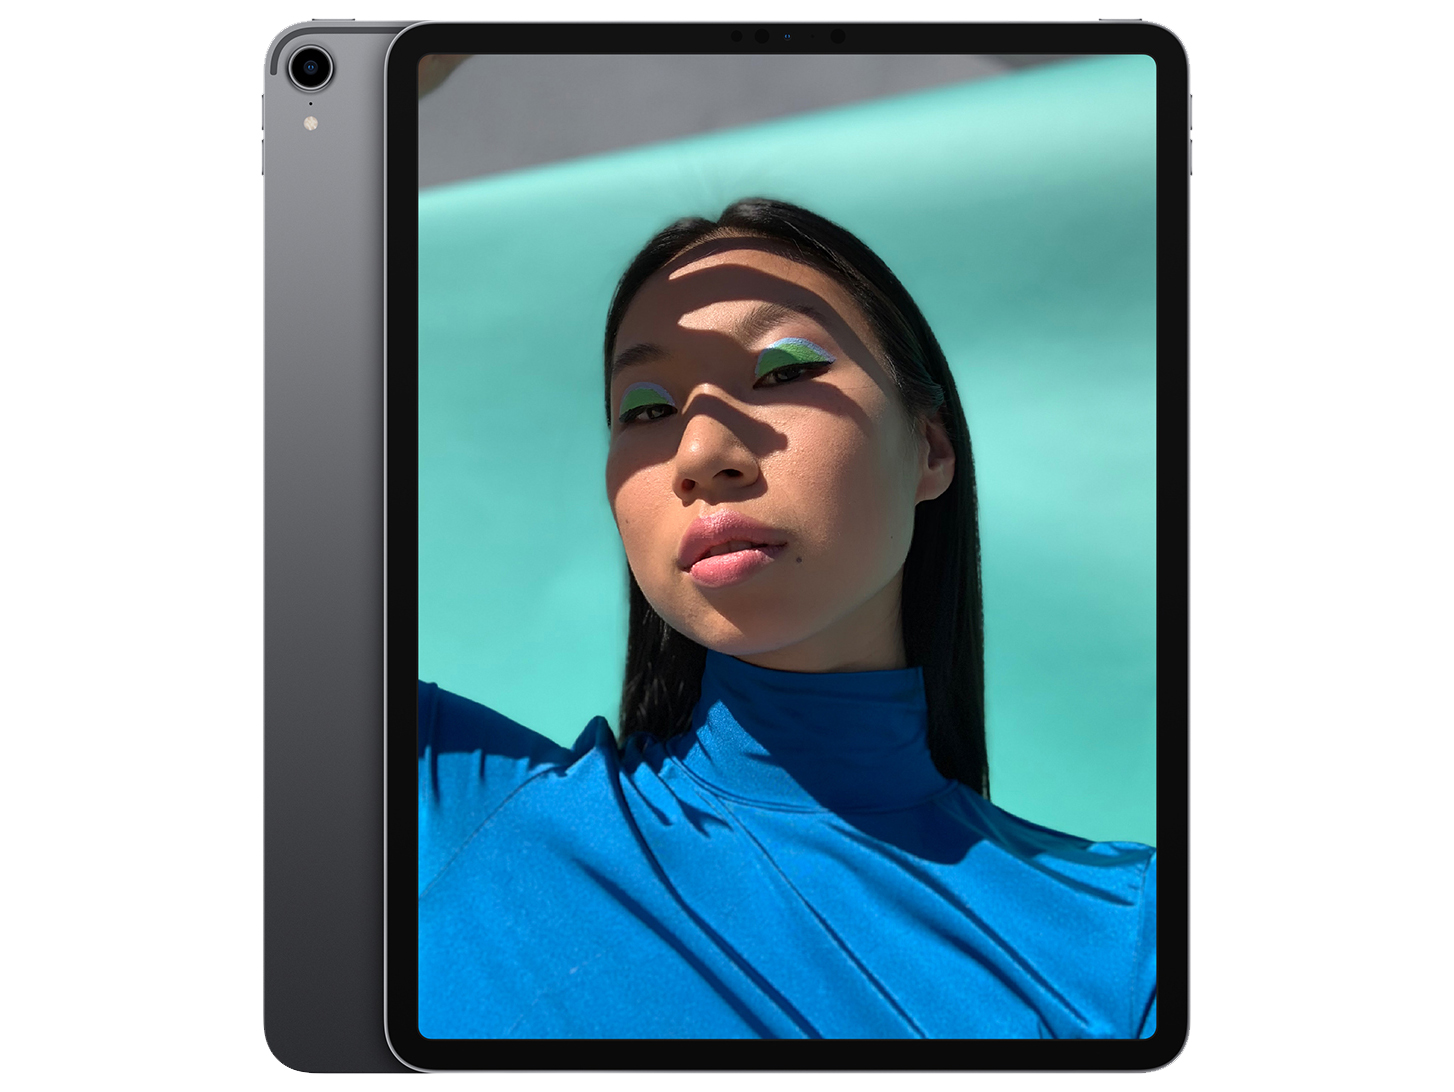 Apple iPad Pro 12 9 (2018, LTE, 256 GB) Tablet Review